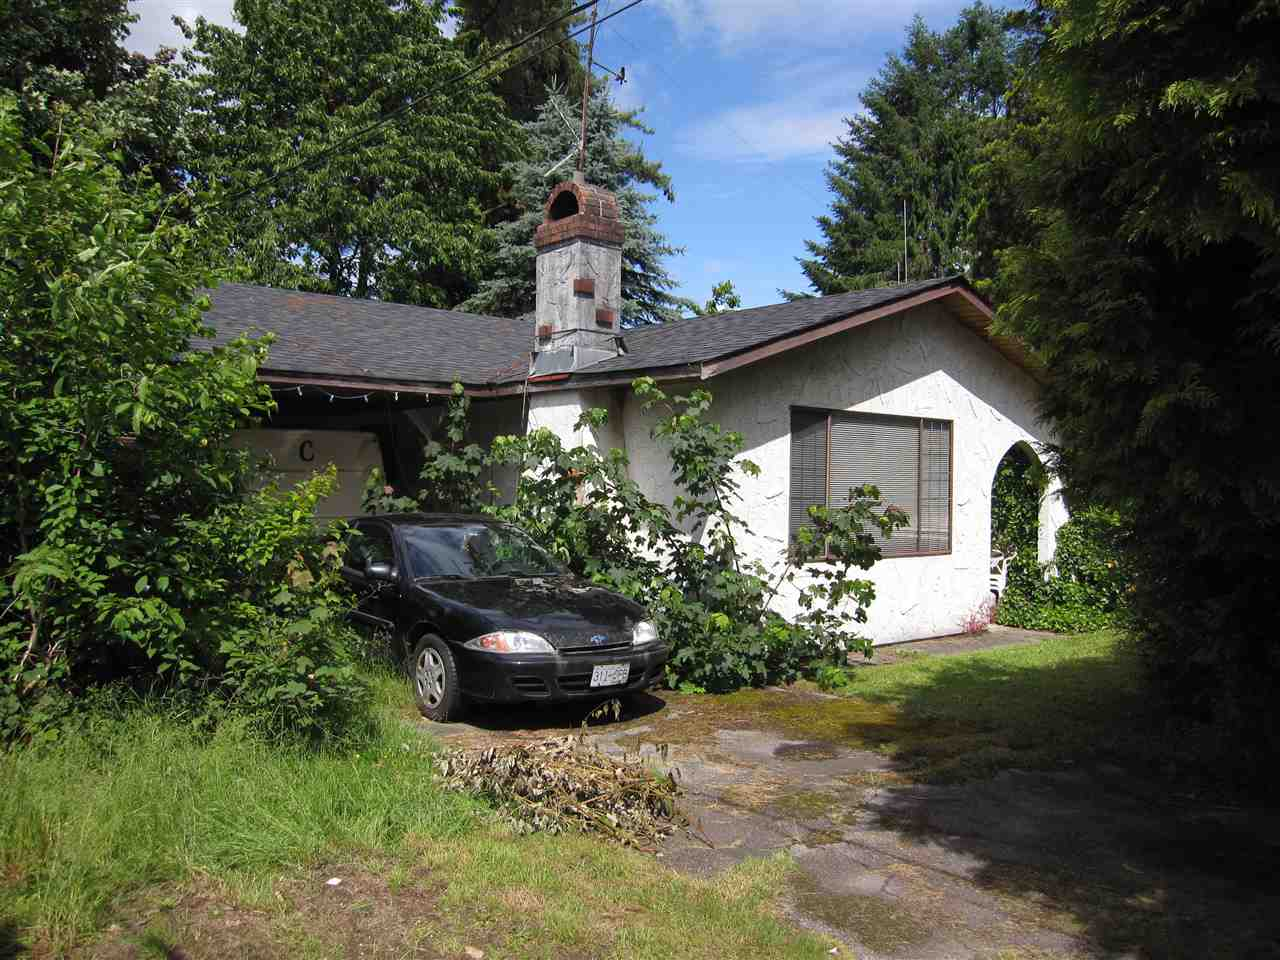 PRIME PITT MEADOWS. Needs lots and lots of tender loving care. 3 bdrm, 2 baths, dining room, living room, kitchen with eating area, crawl space. Big 7200 sq ft lot. Close to all levels of schools, recreation and transit. Bring your hammer.